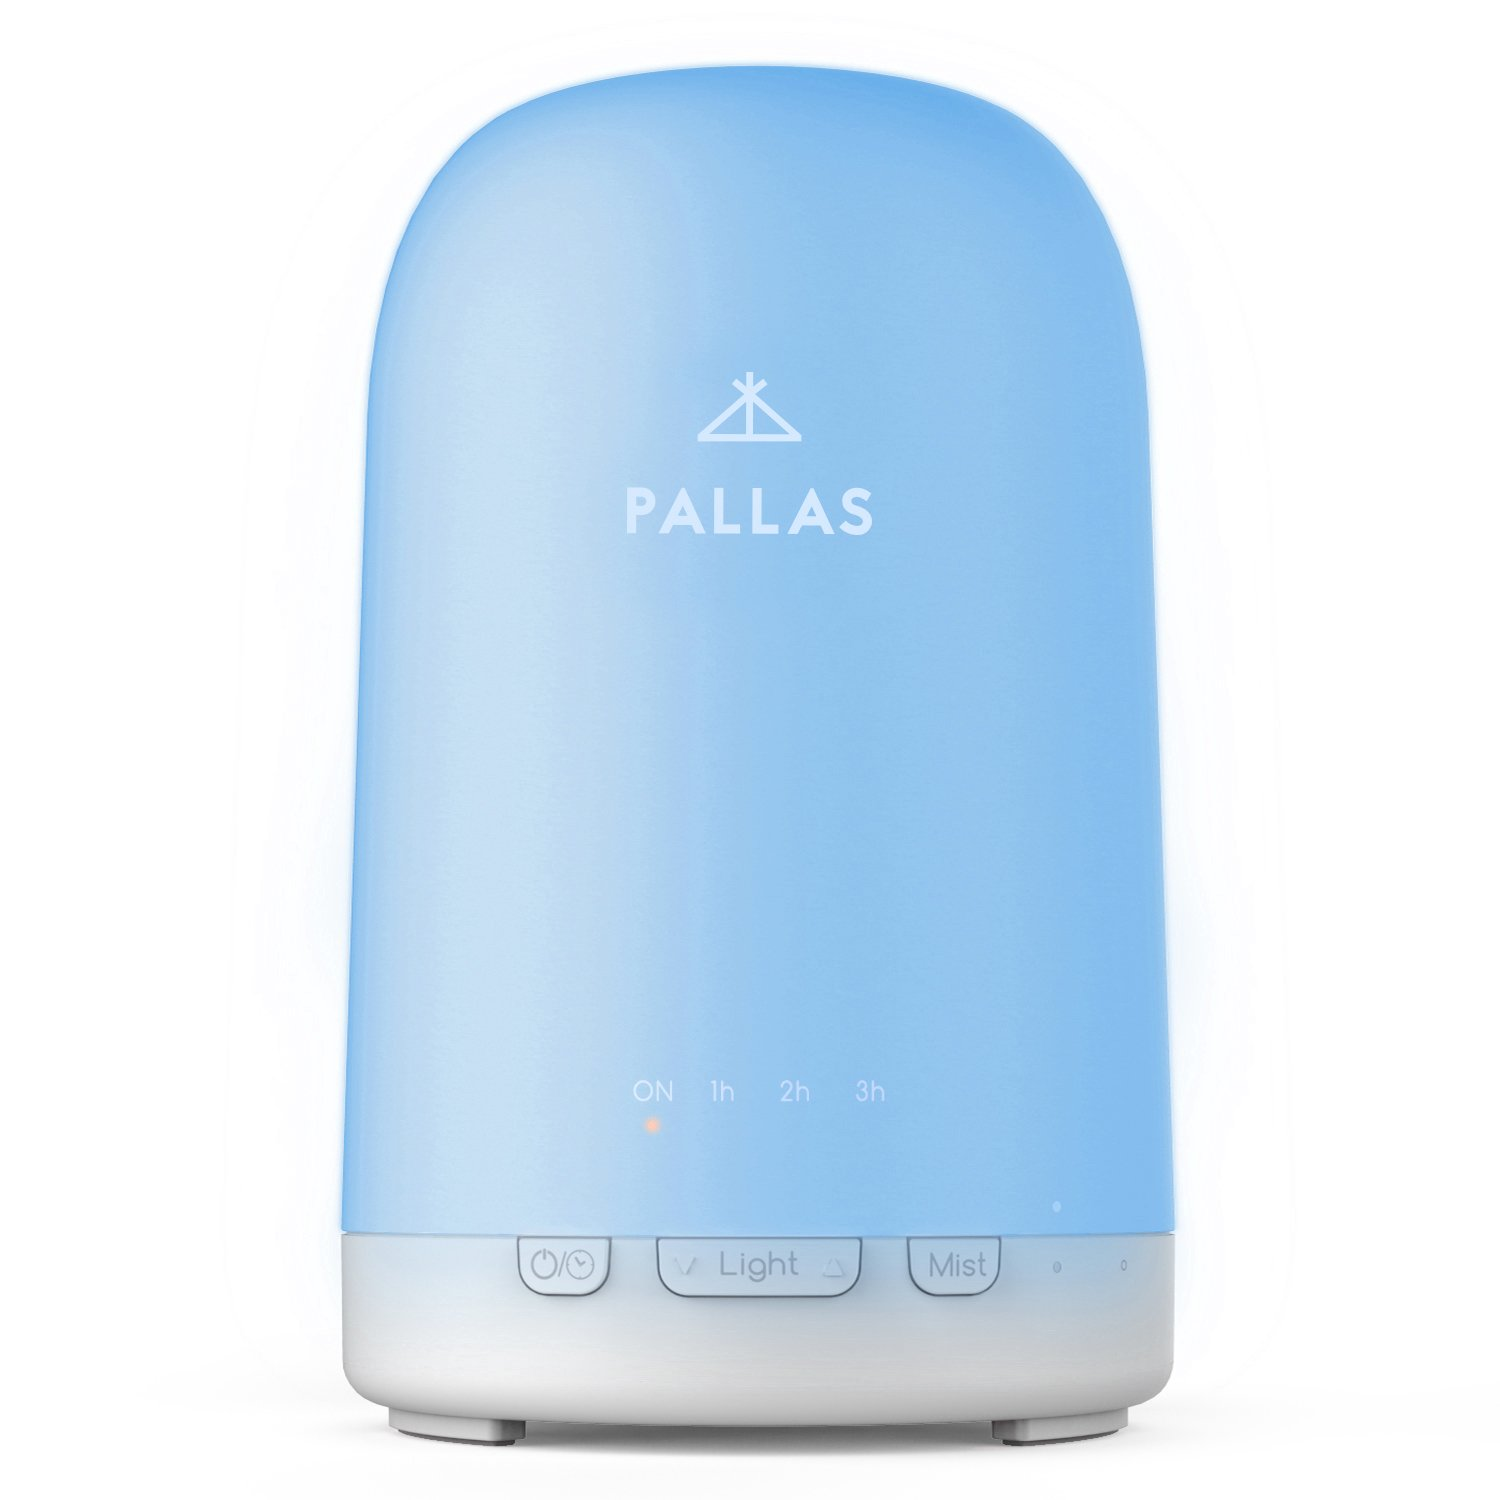 Pallas 200ml Essential Oil Diffuser Ultrasonic Aromatherapy Diffuser Humidifier Adjustable Cool Mist Auto-Off with 24 Colors Changing Light